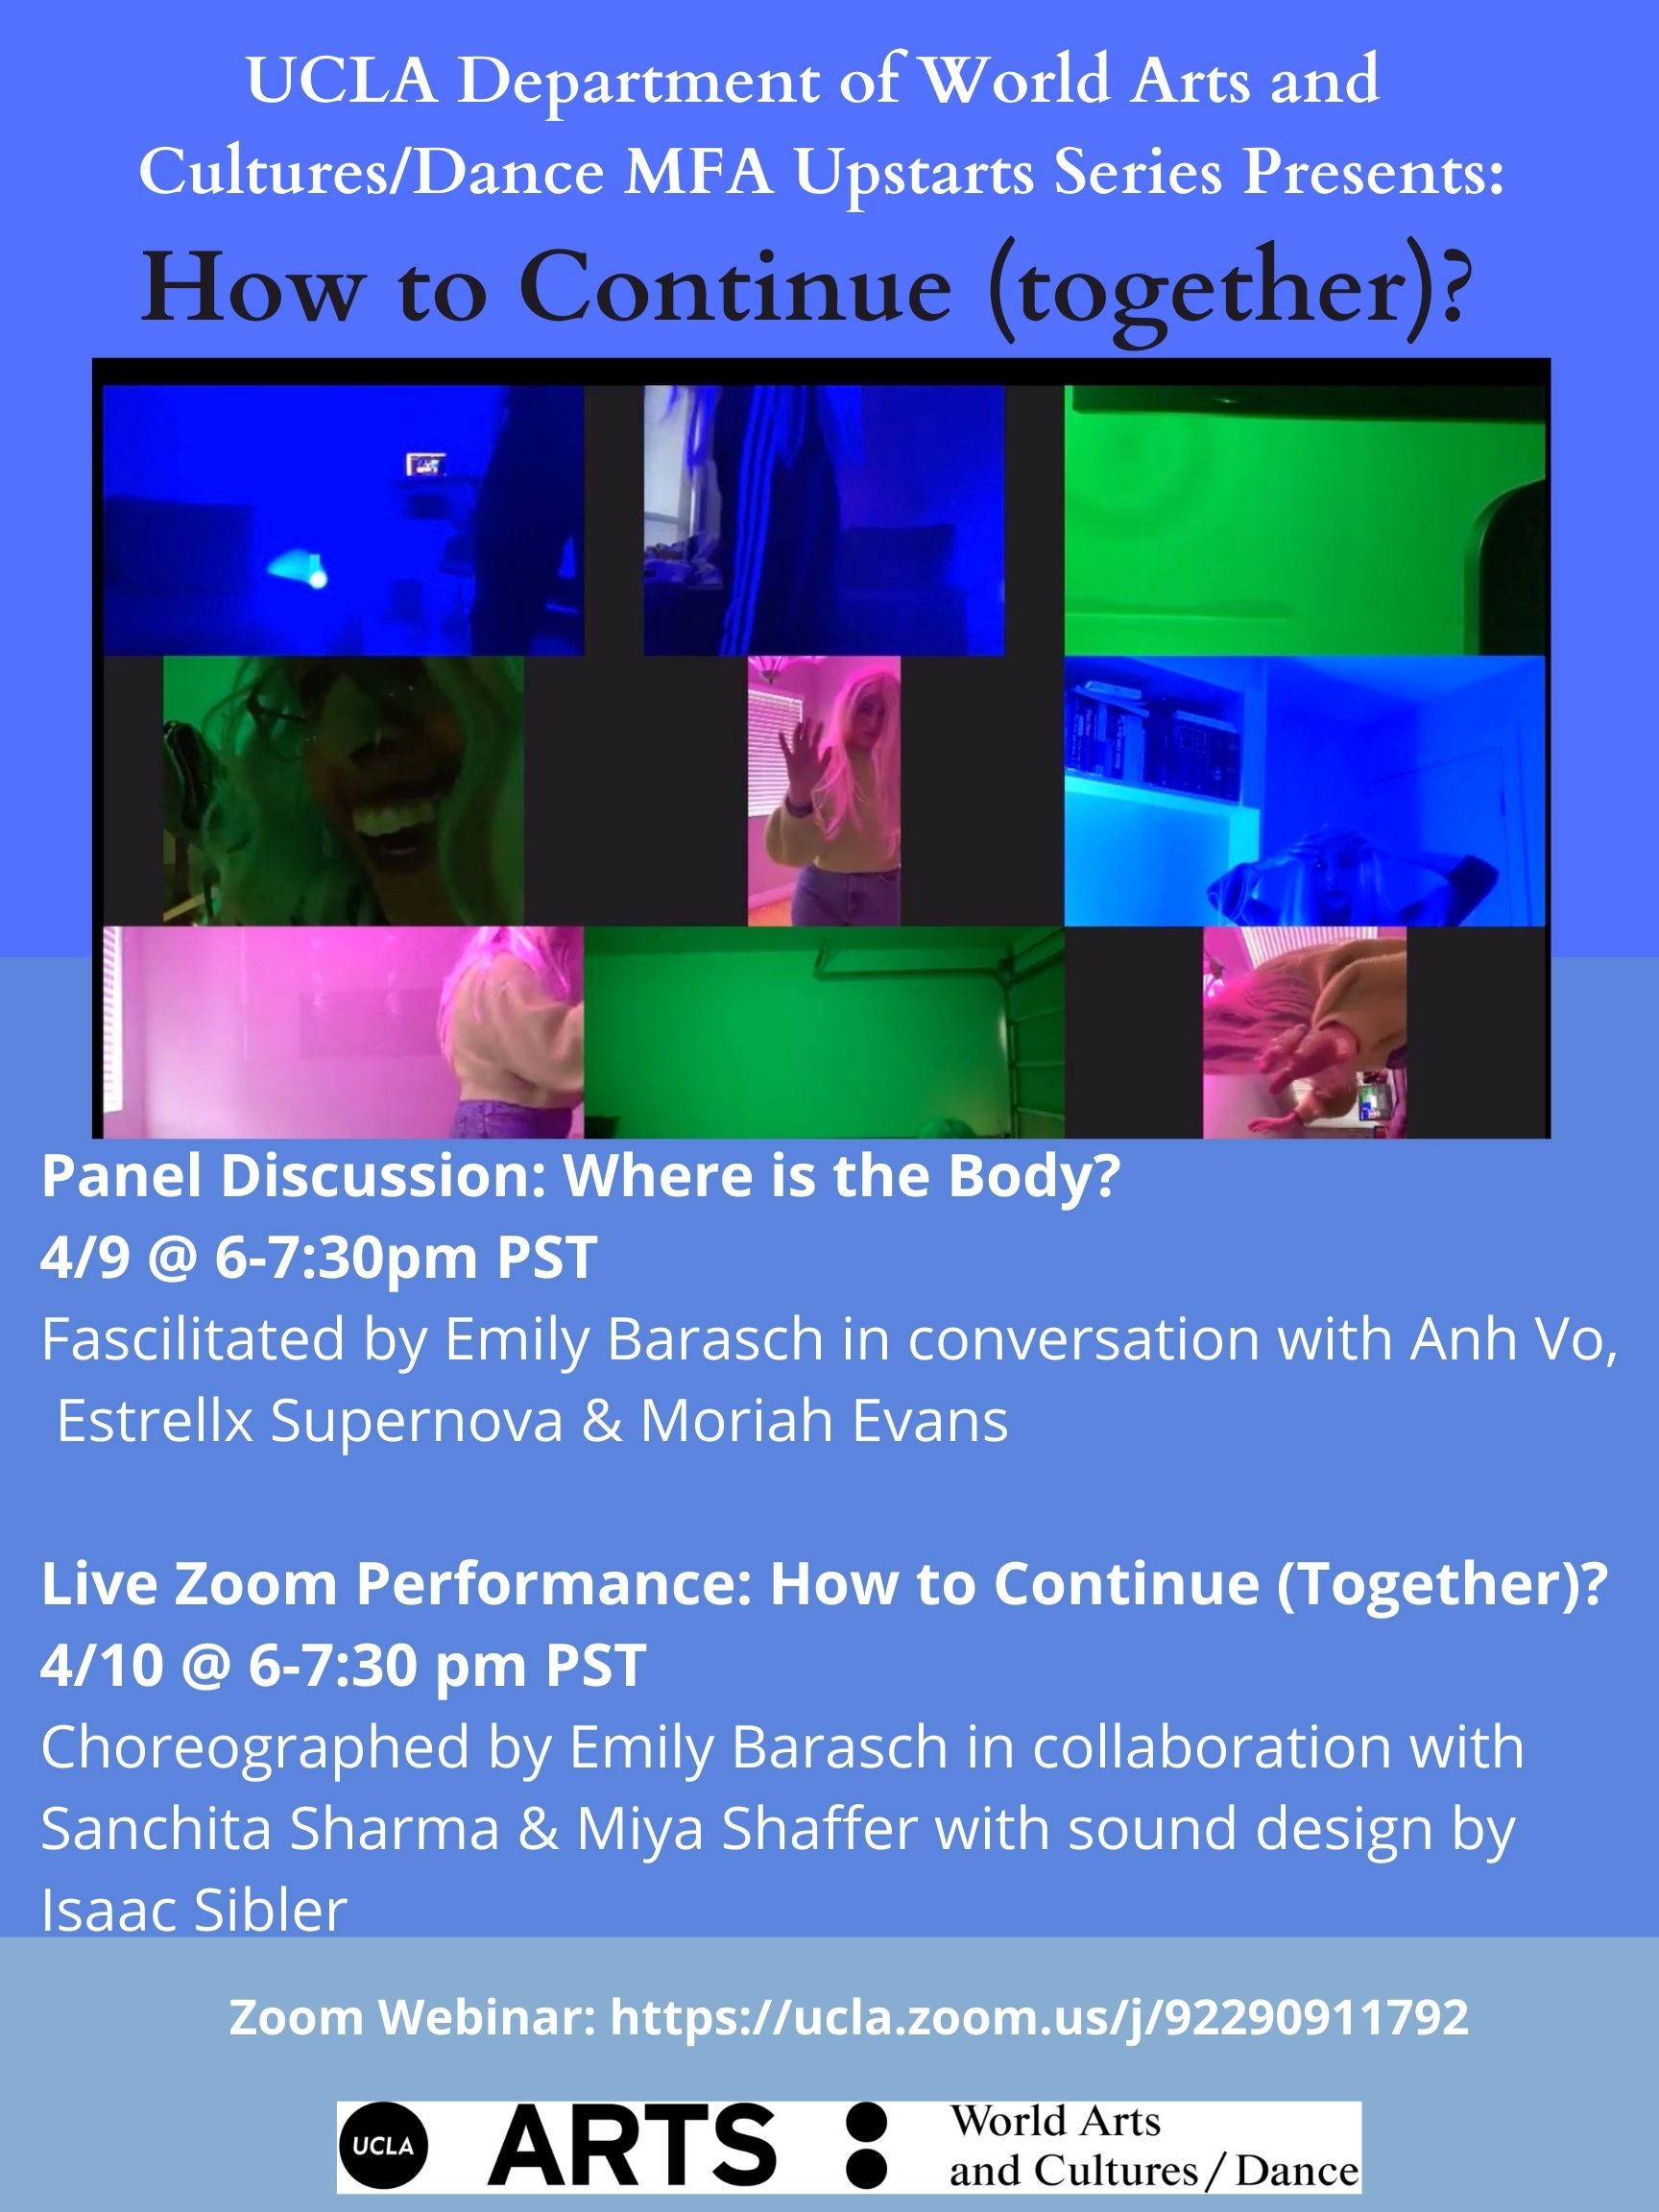 How to Continue (Together)? Is a two night event comprised of a panel discussion and a live zoom performance.